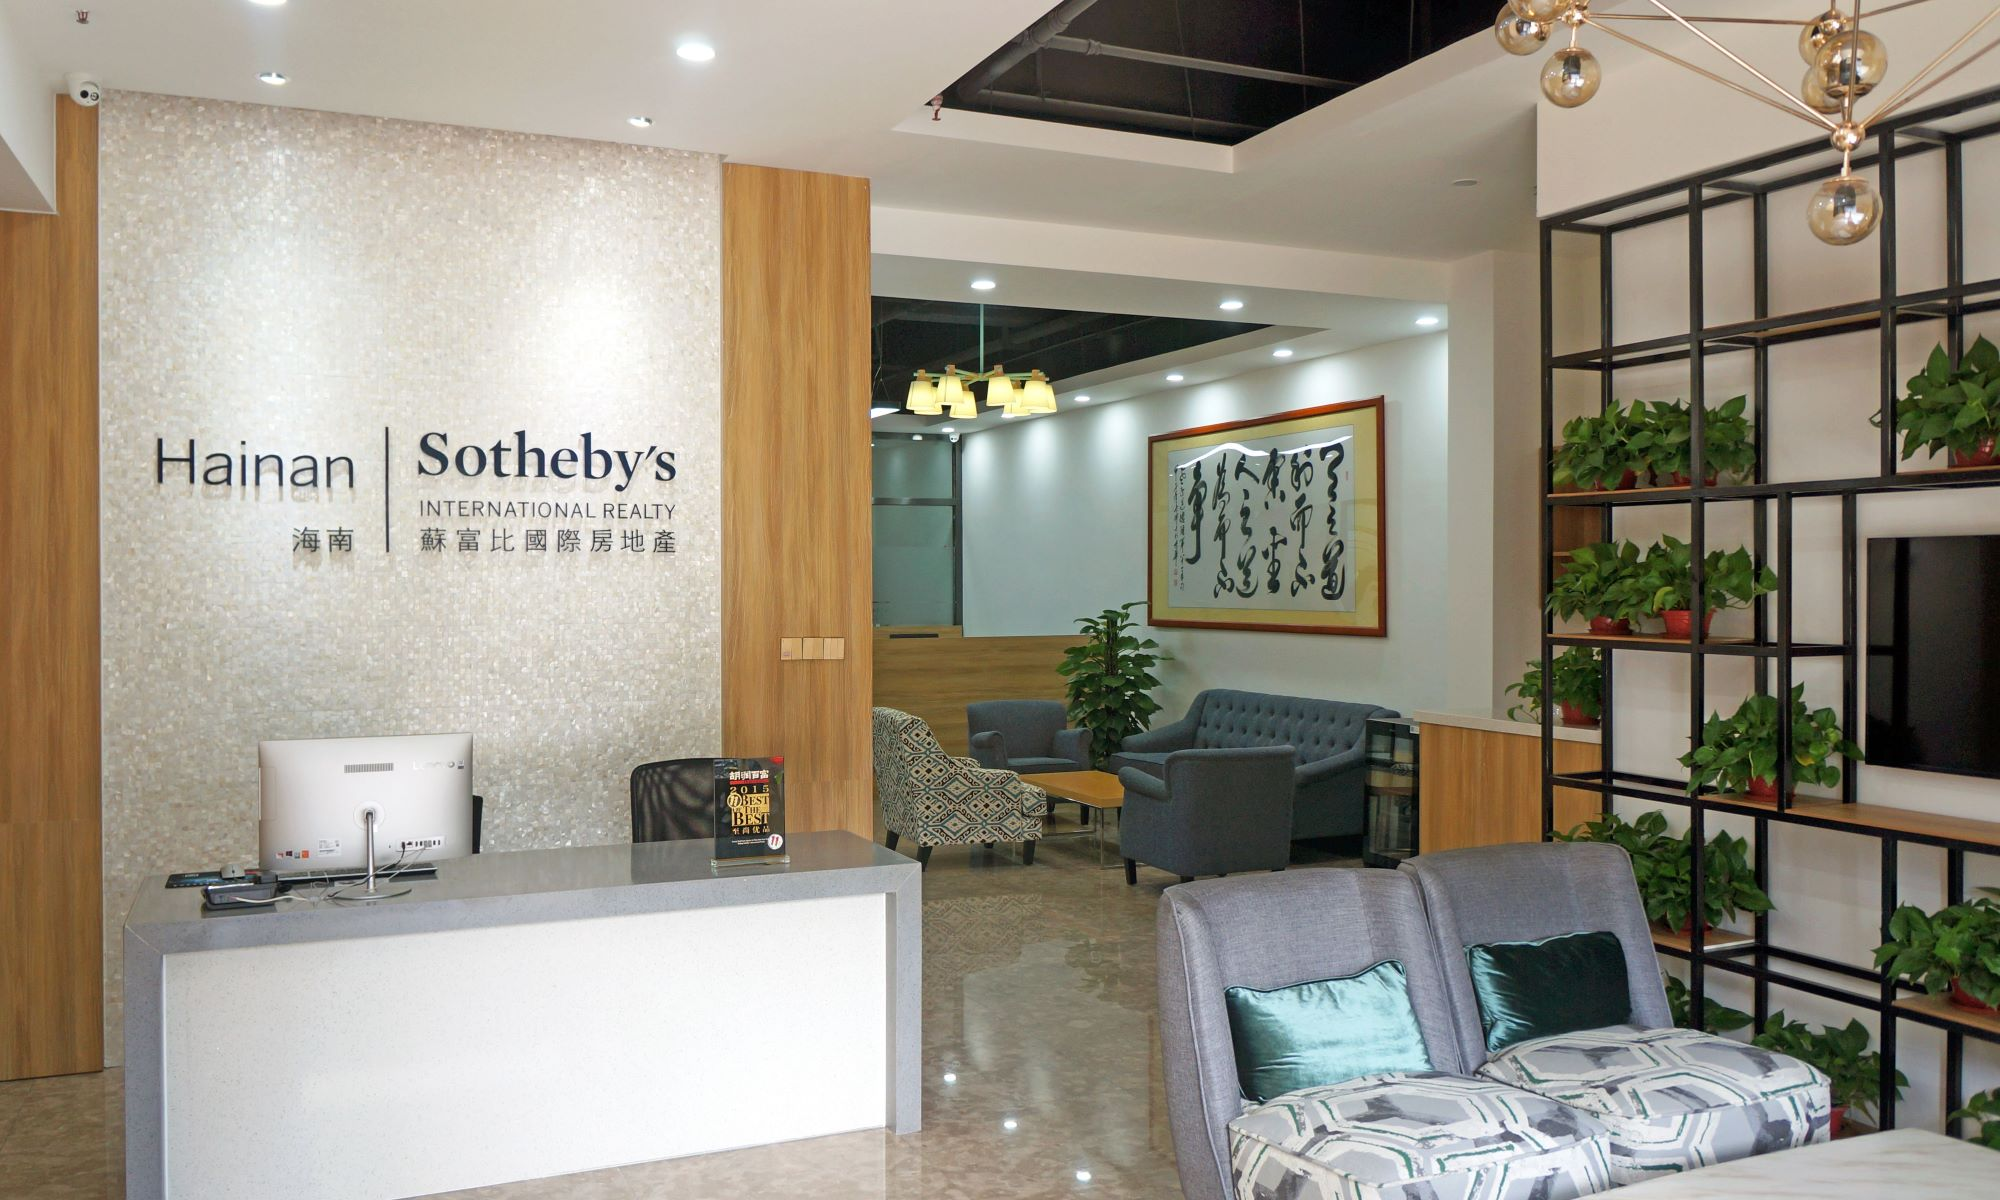 Office Hainan Sotheby's International Realty Photo